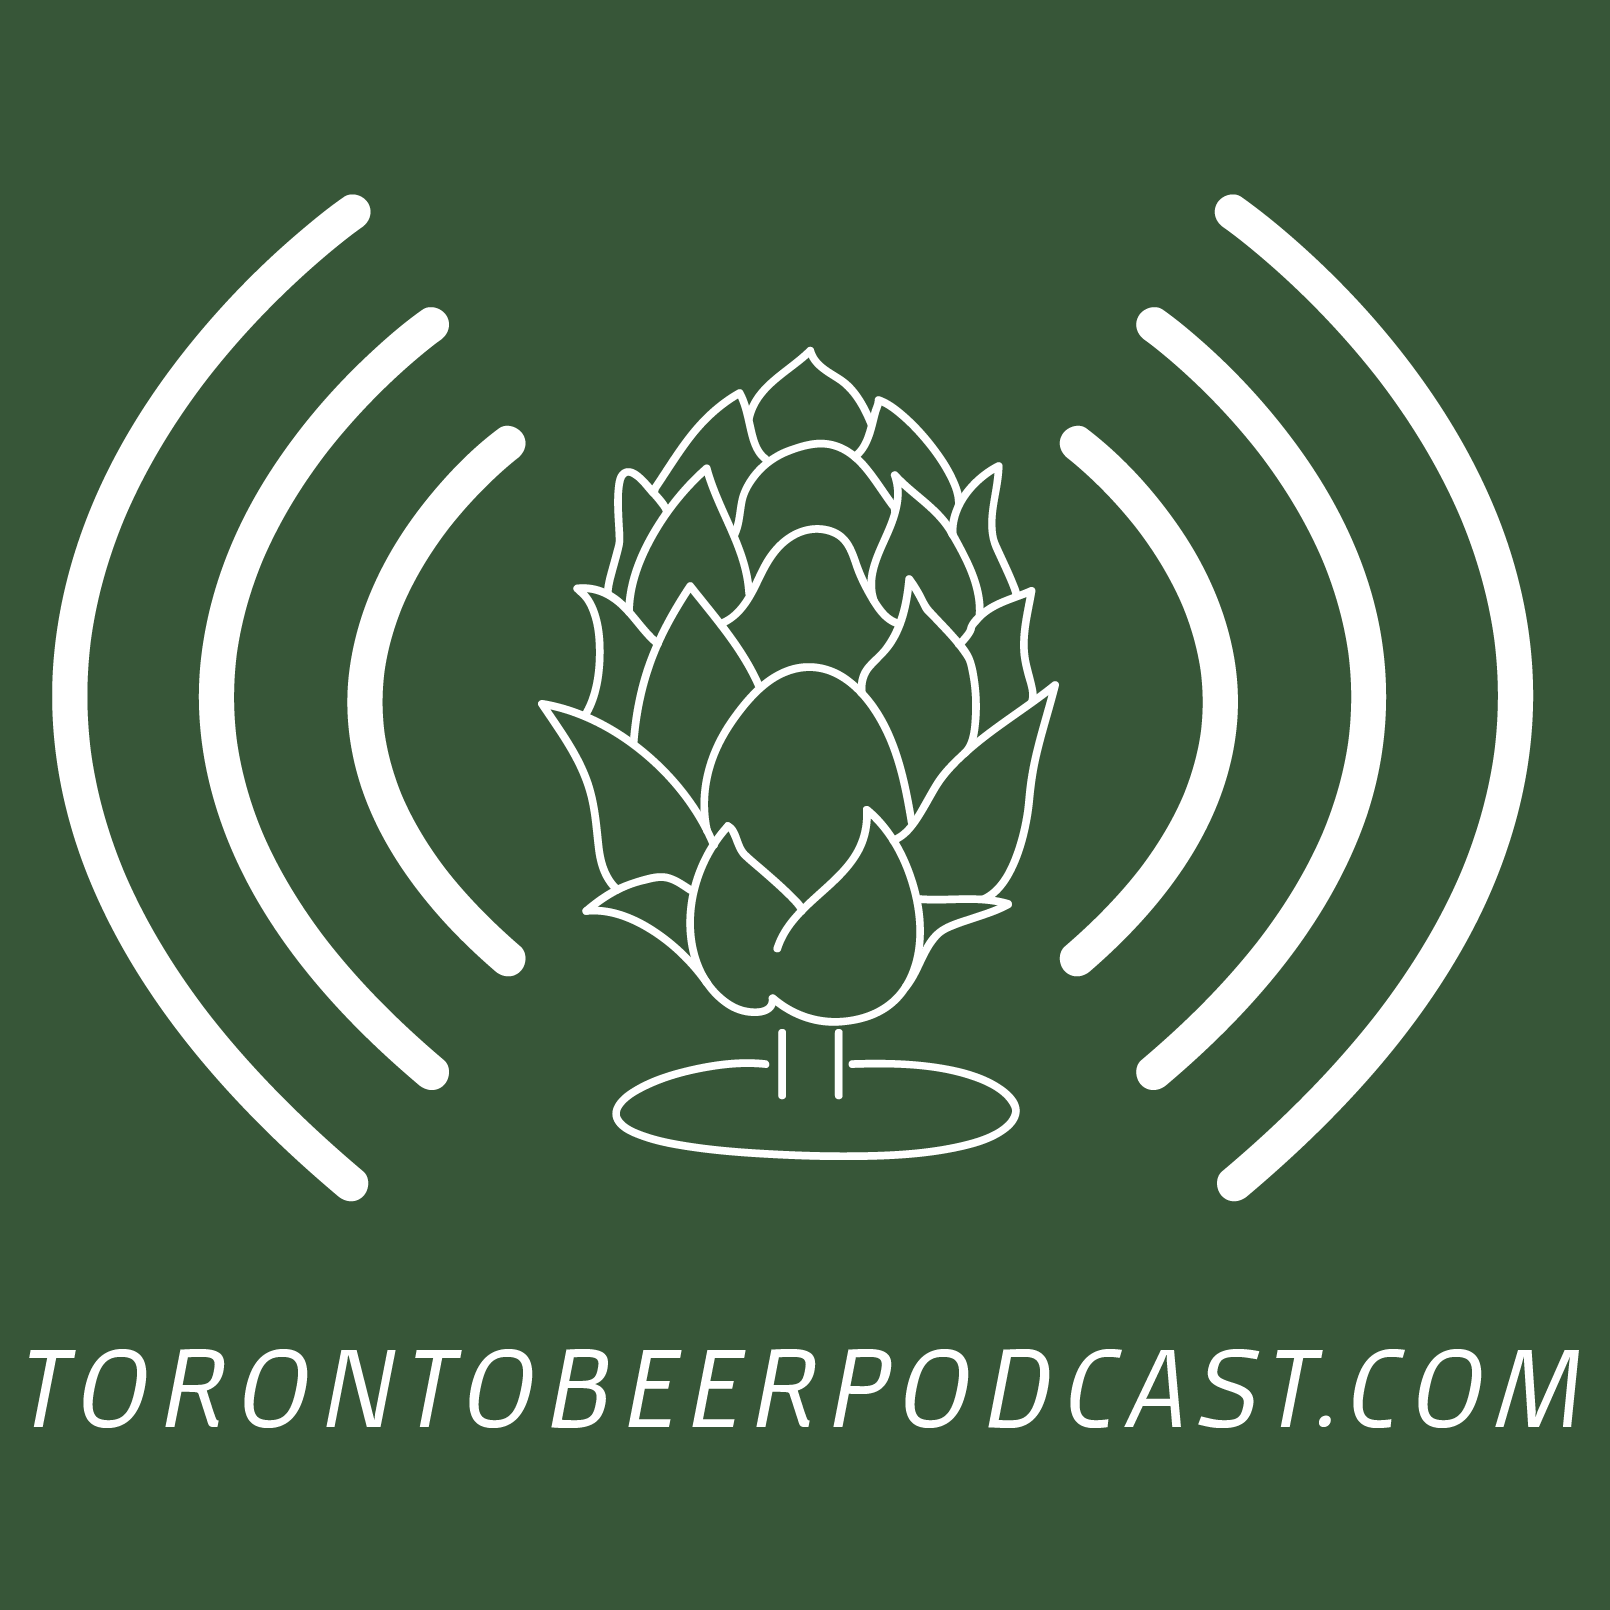 Toronto Beer Podcast